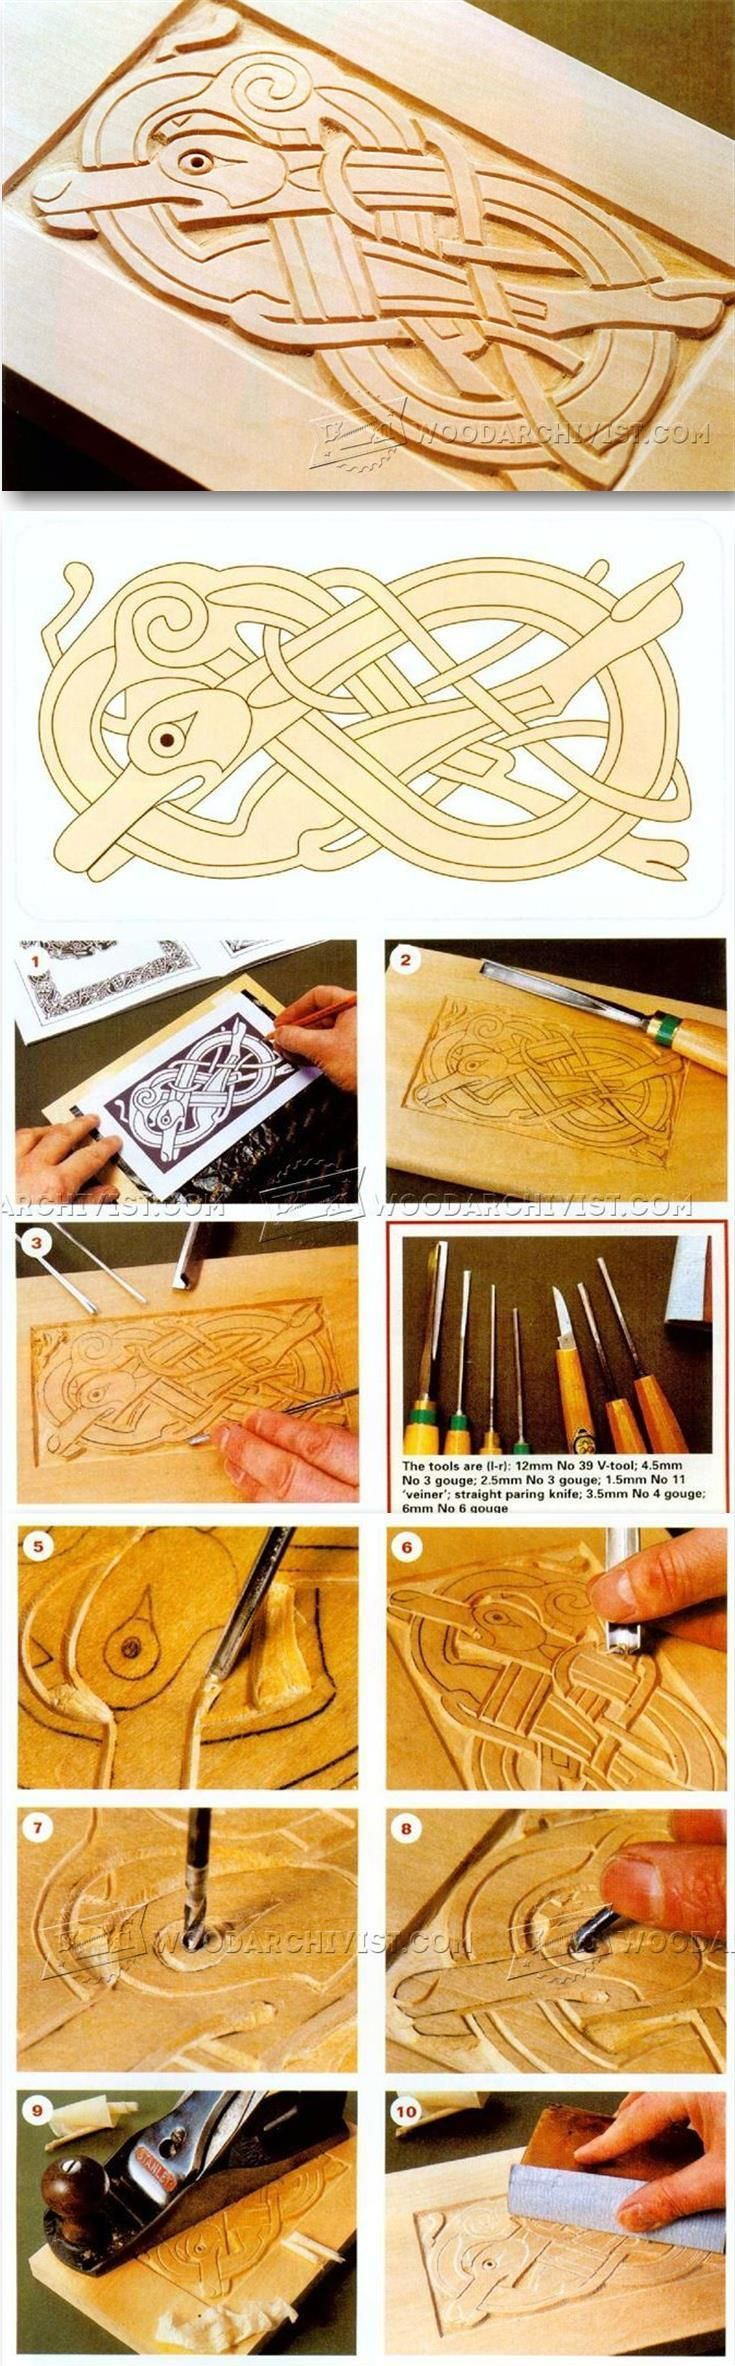 The best wood carving patterns ideas on pinterest